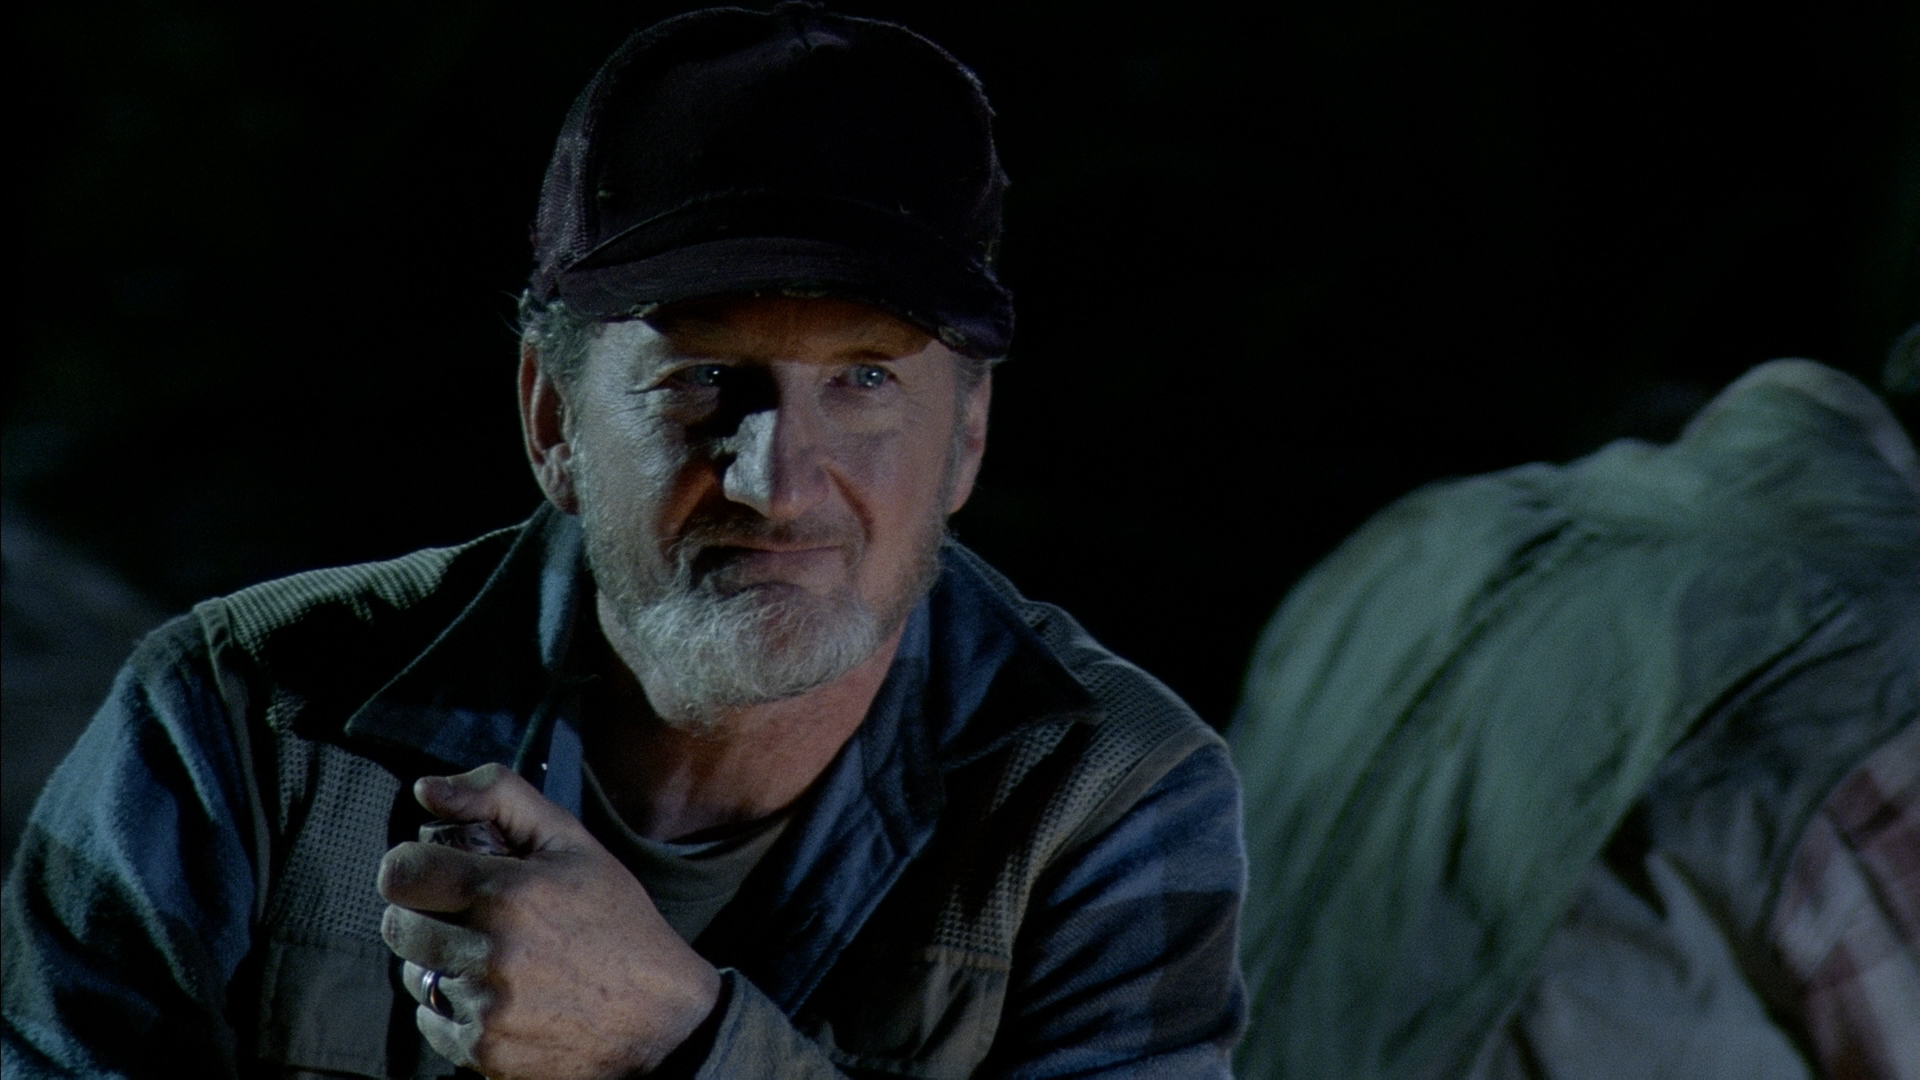 Robert Englund in the opening scene of Adam Green's slasher film Hatchet.